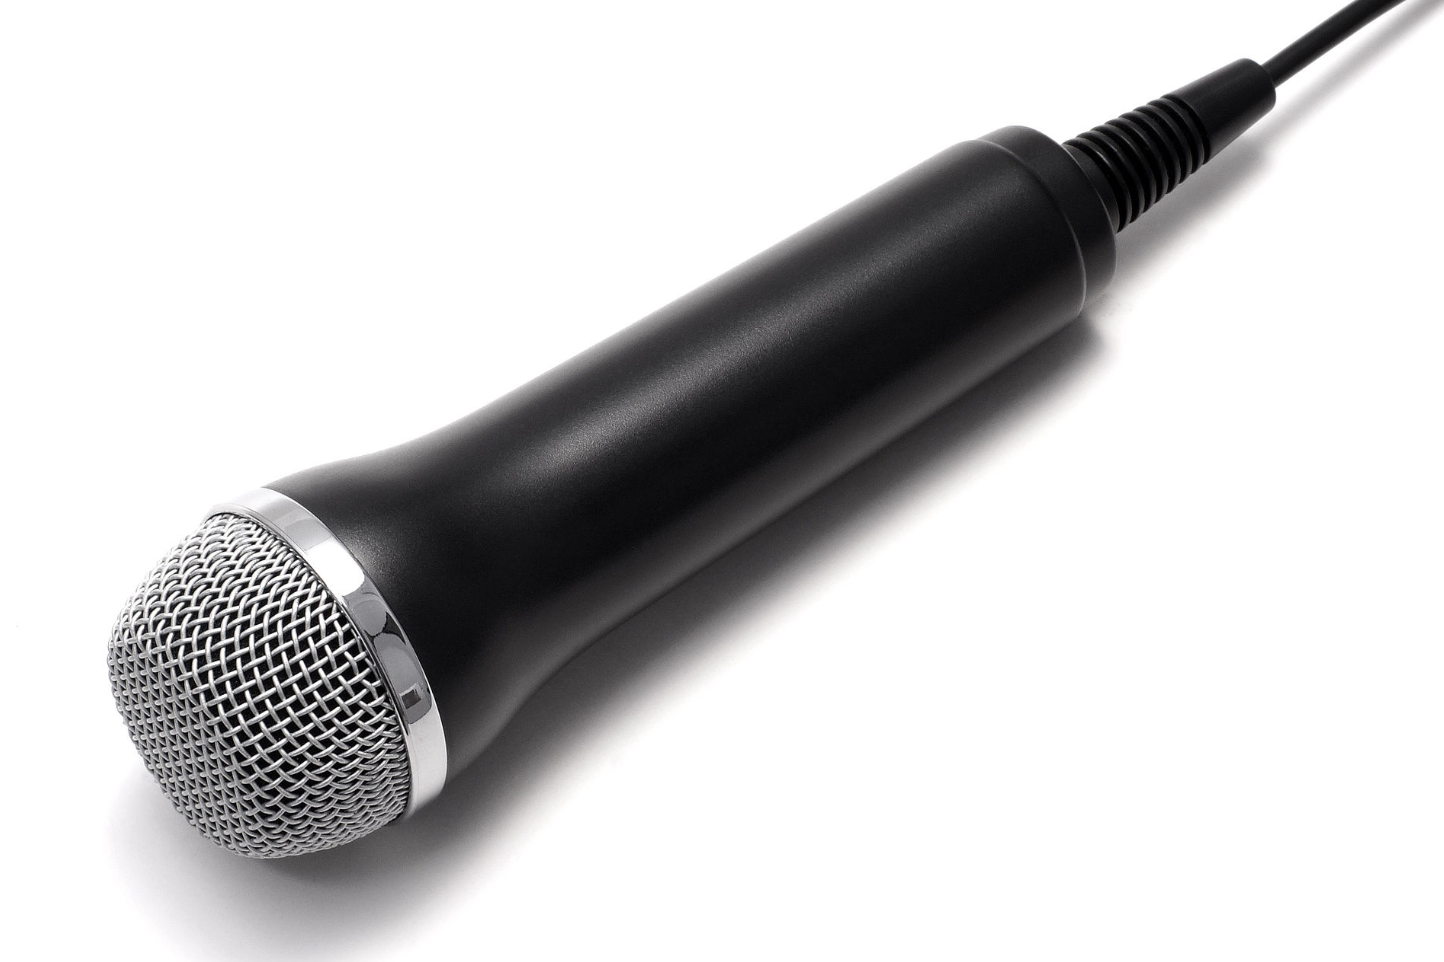 Microphone. Wiki commons 2019.